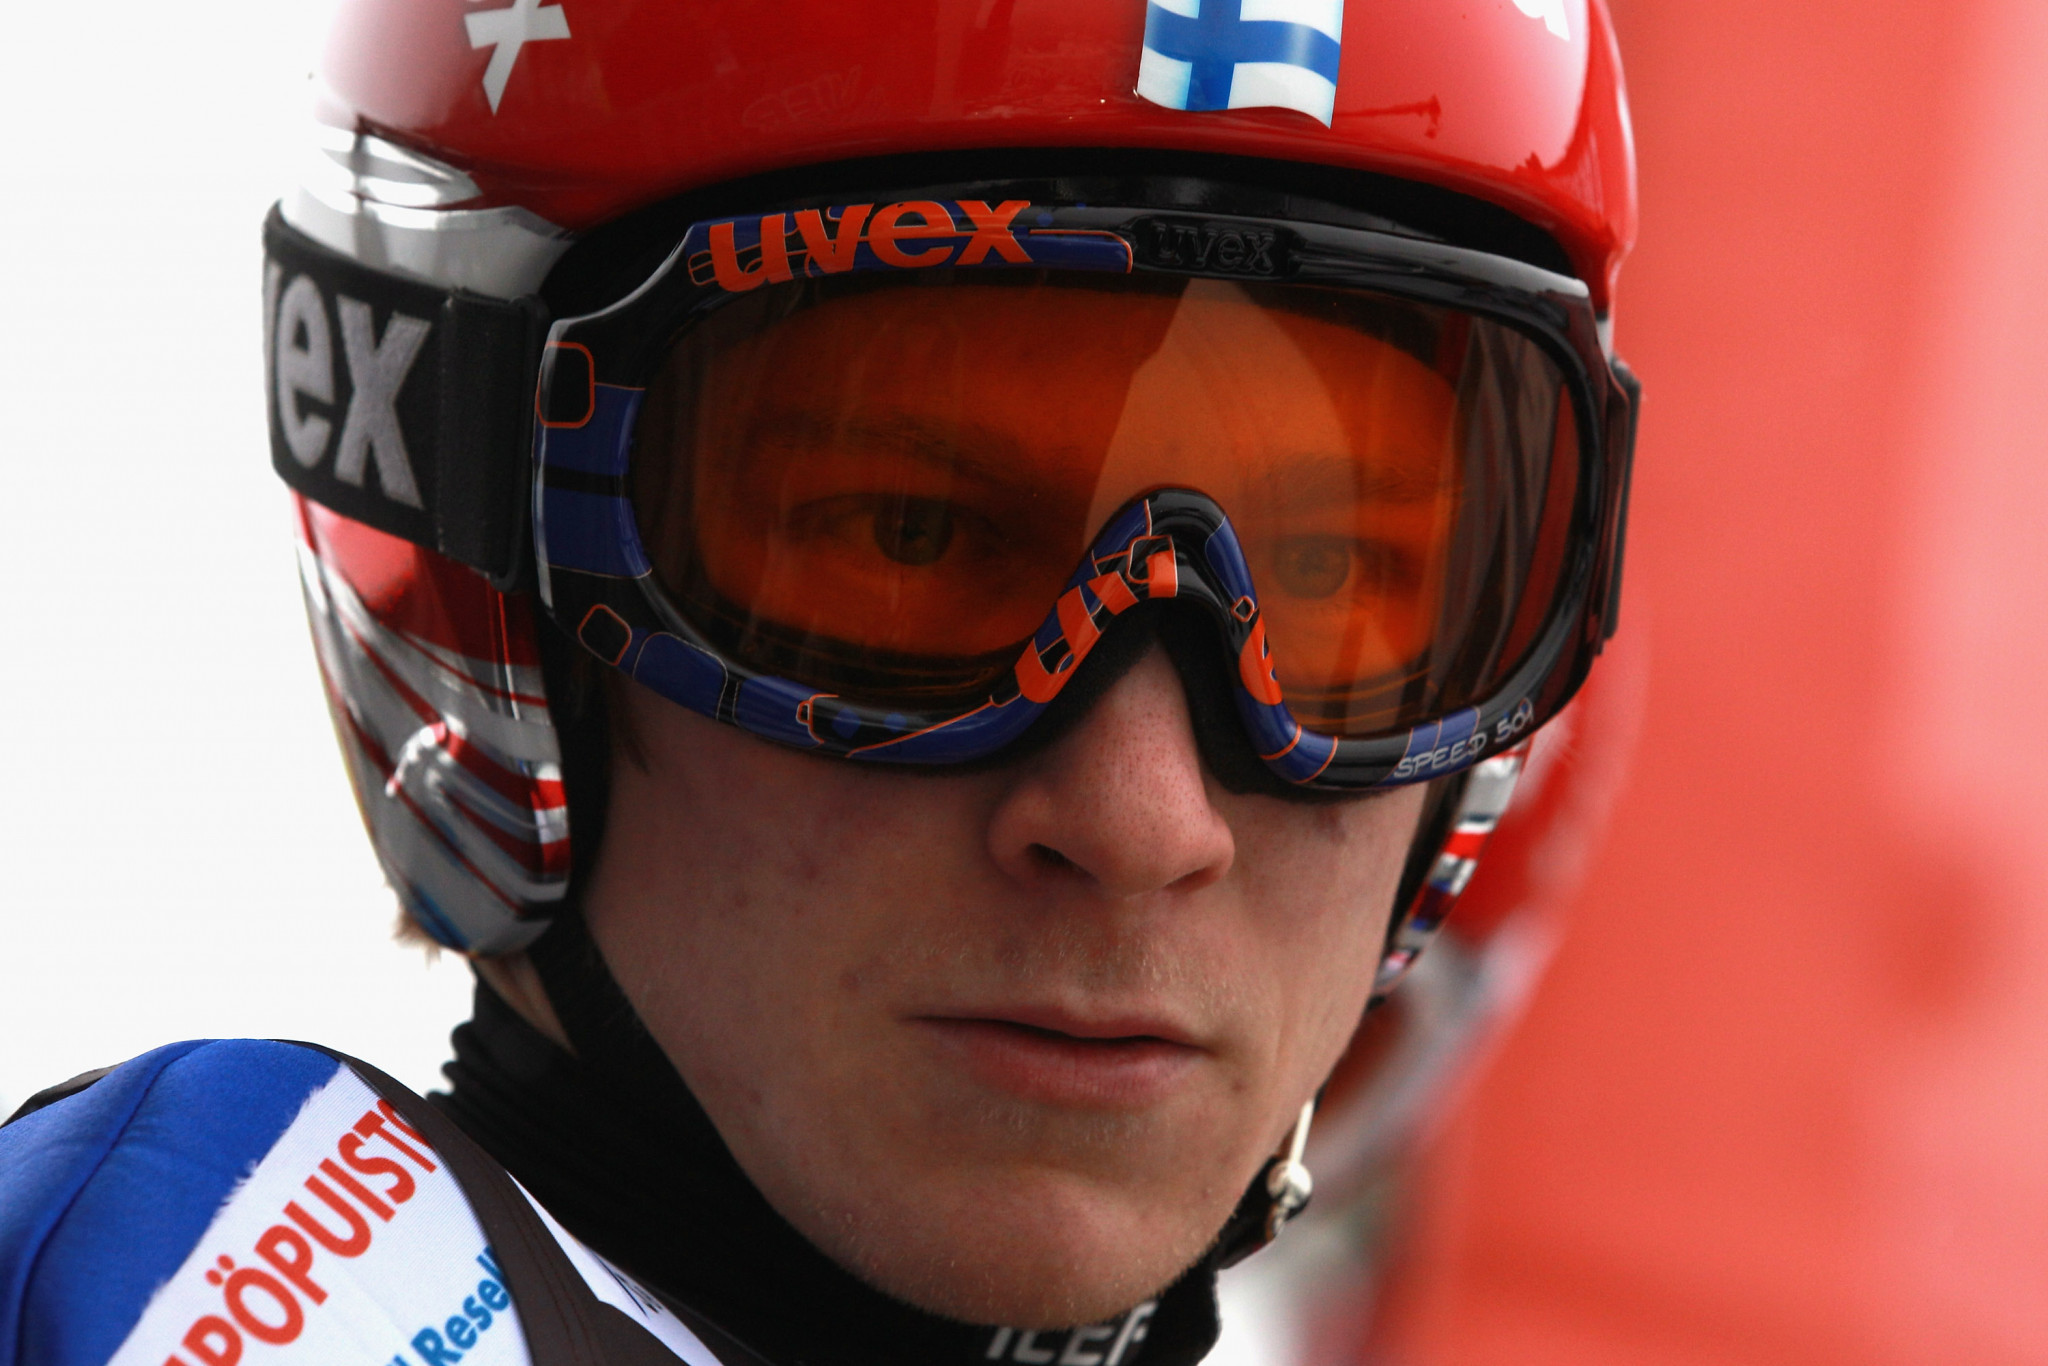 Ski jumper Larinto retires after injury-hit career